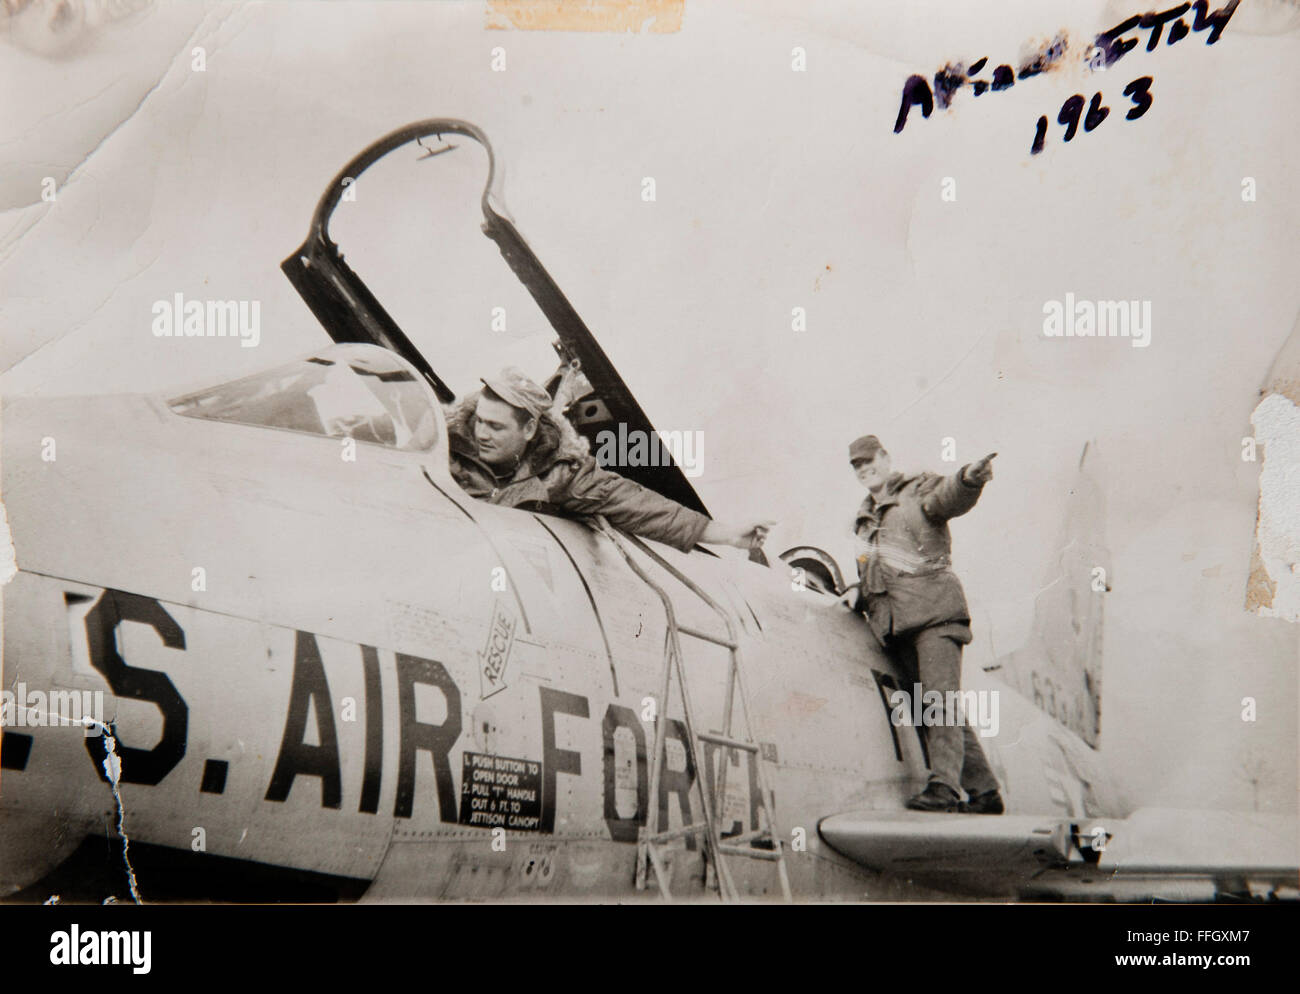 Hackworth (left) performs a flight control check on an F-100 Super Sabre with Airman Richard Evinasky in 1963 at - Stock Image